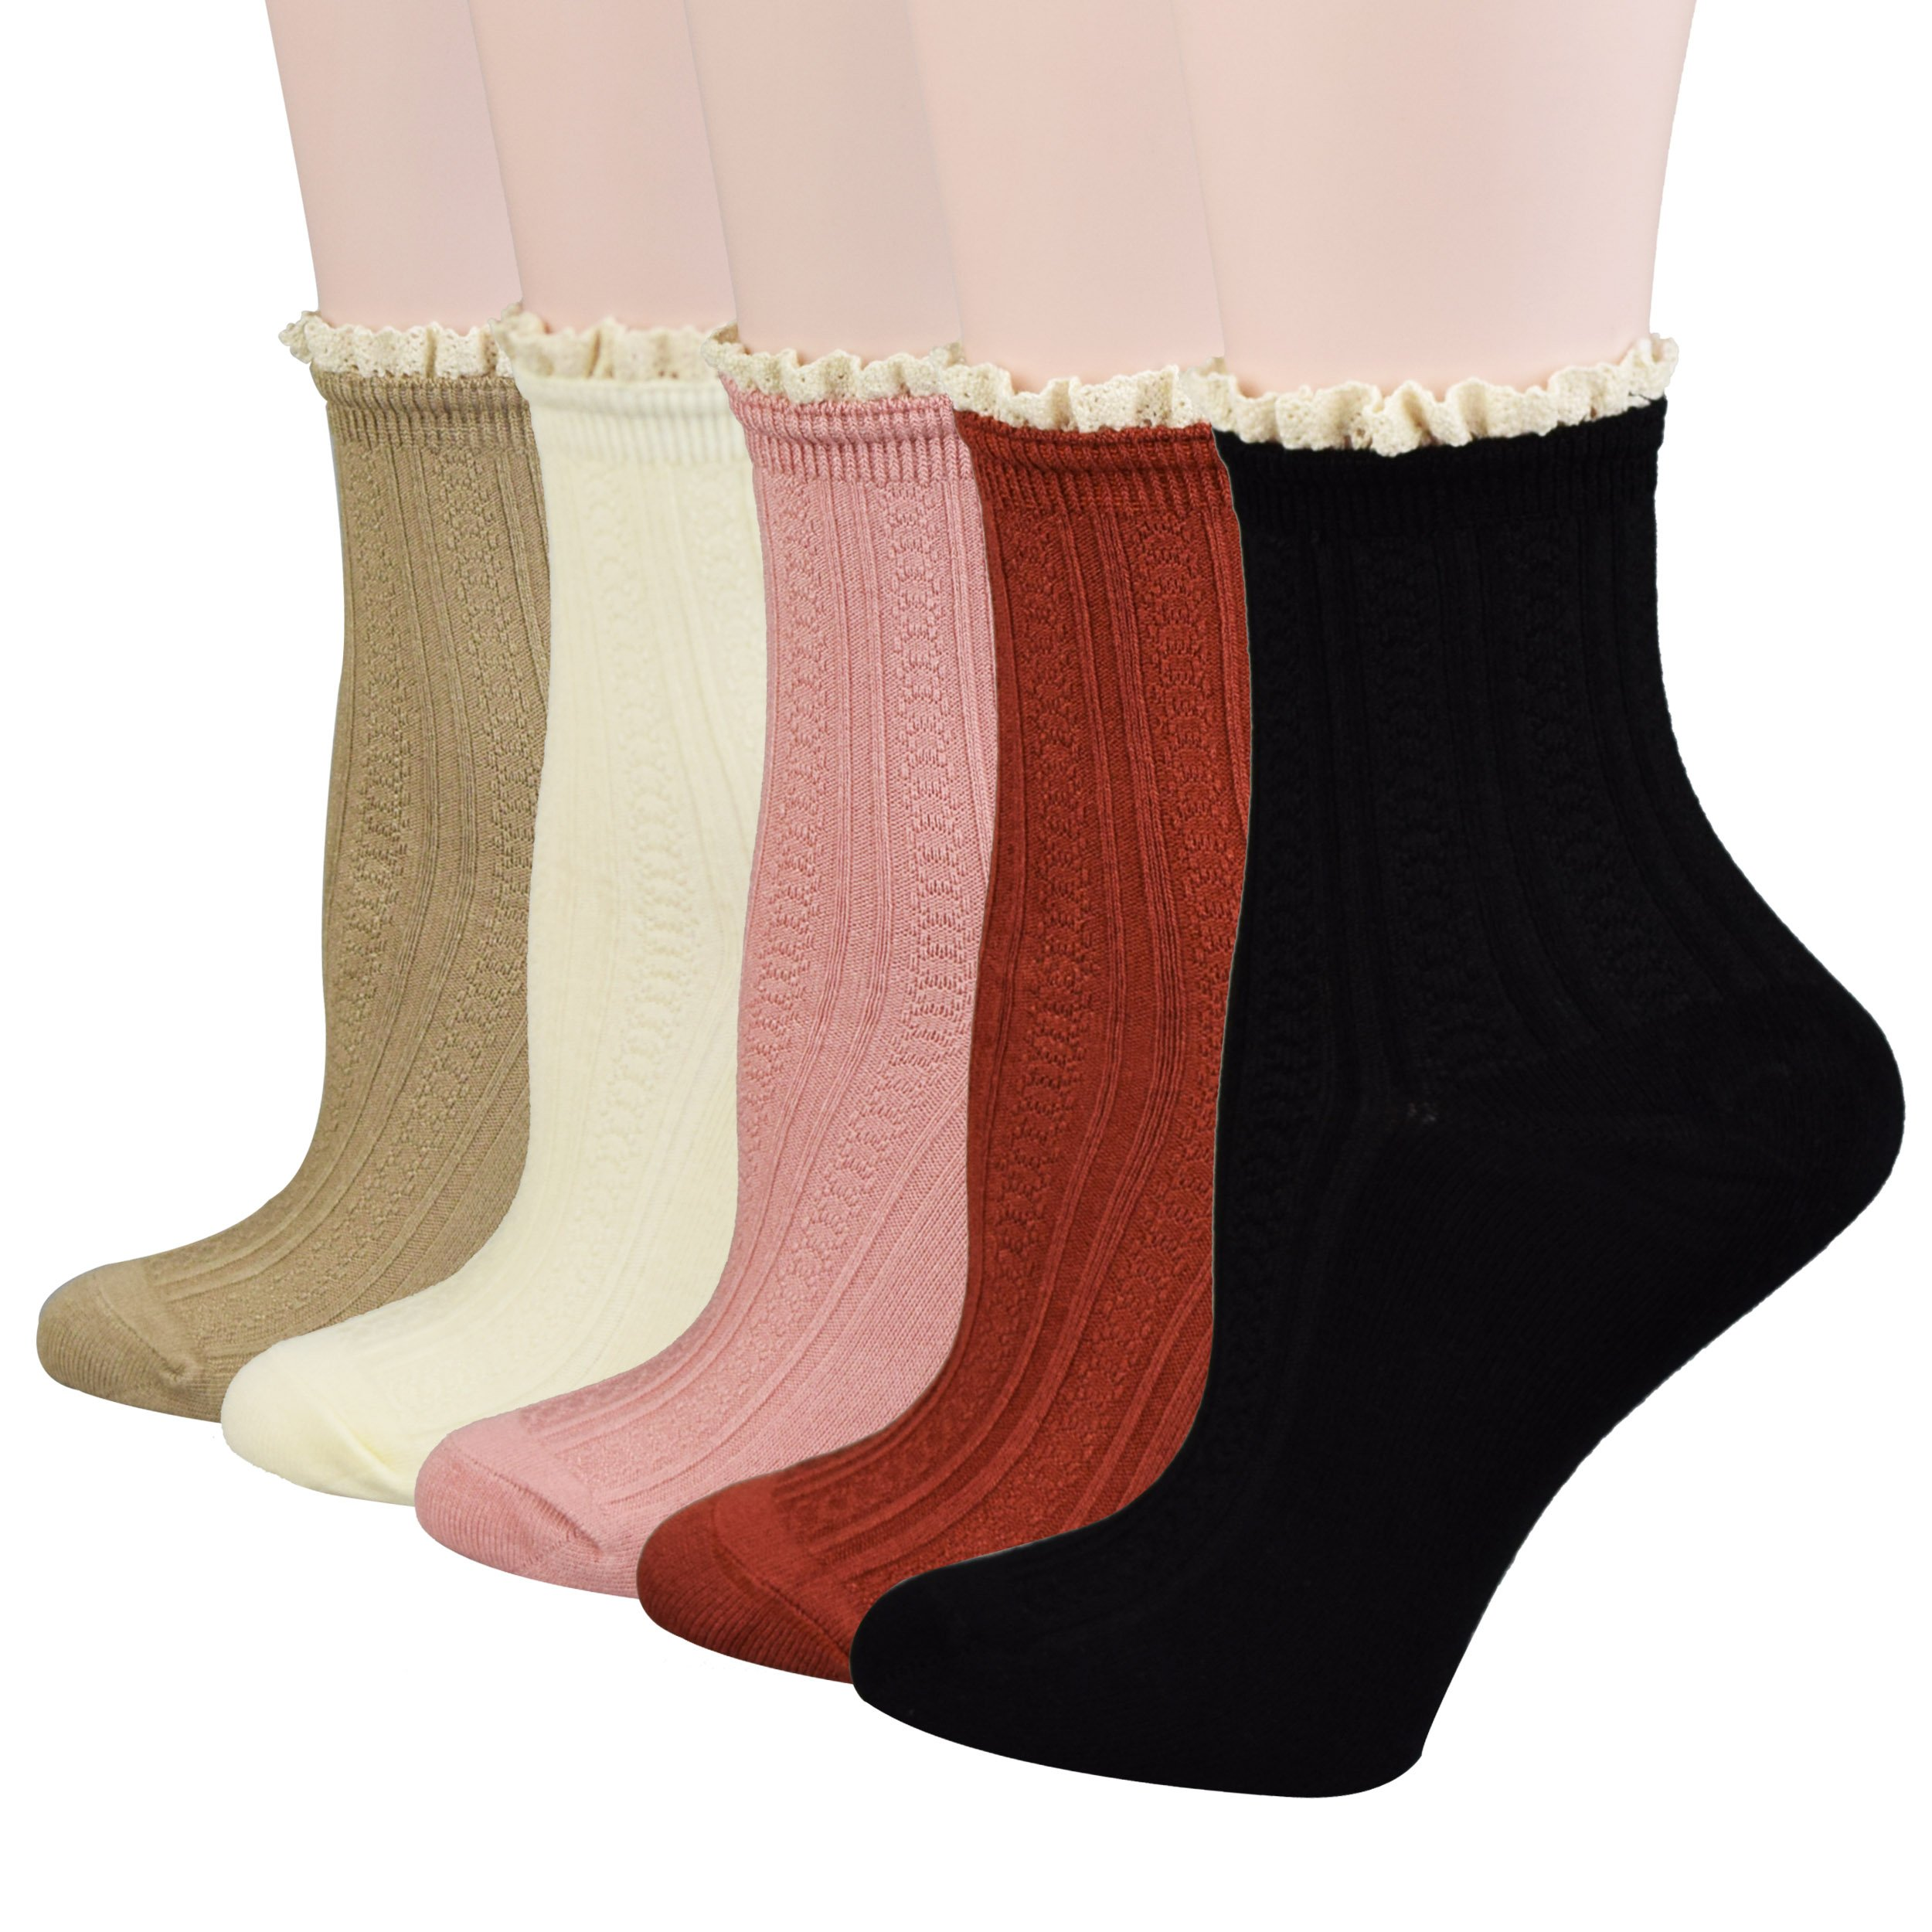 Fitu Women's Vintage Ruffle Frilly Cute Rayon Bamboo Boot Socks 5 Pairs Pack in Gift Box